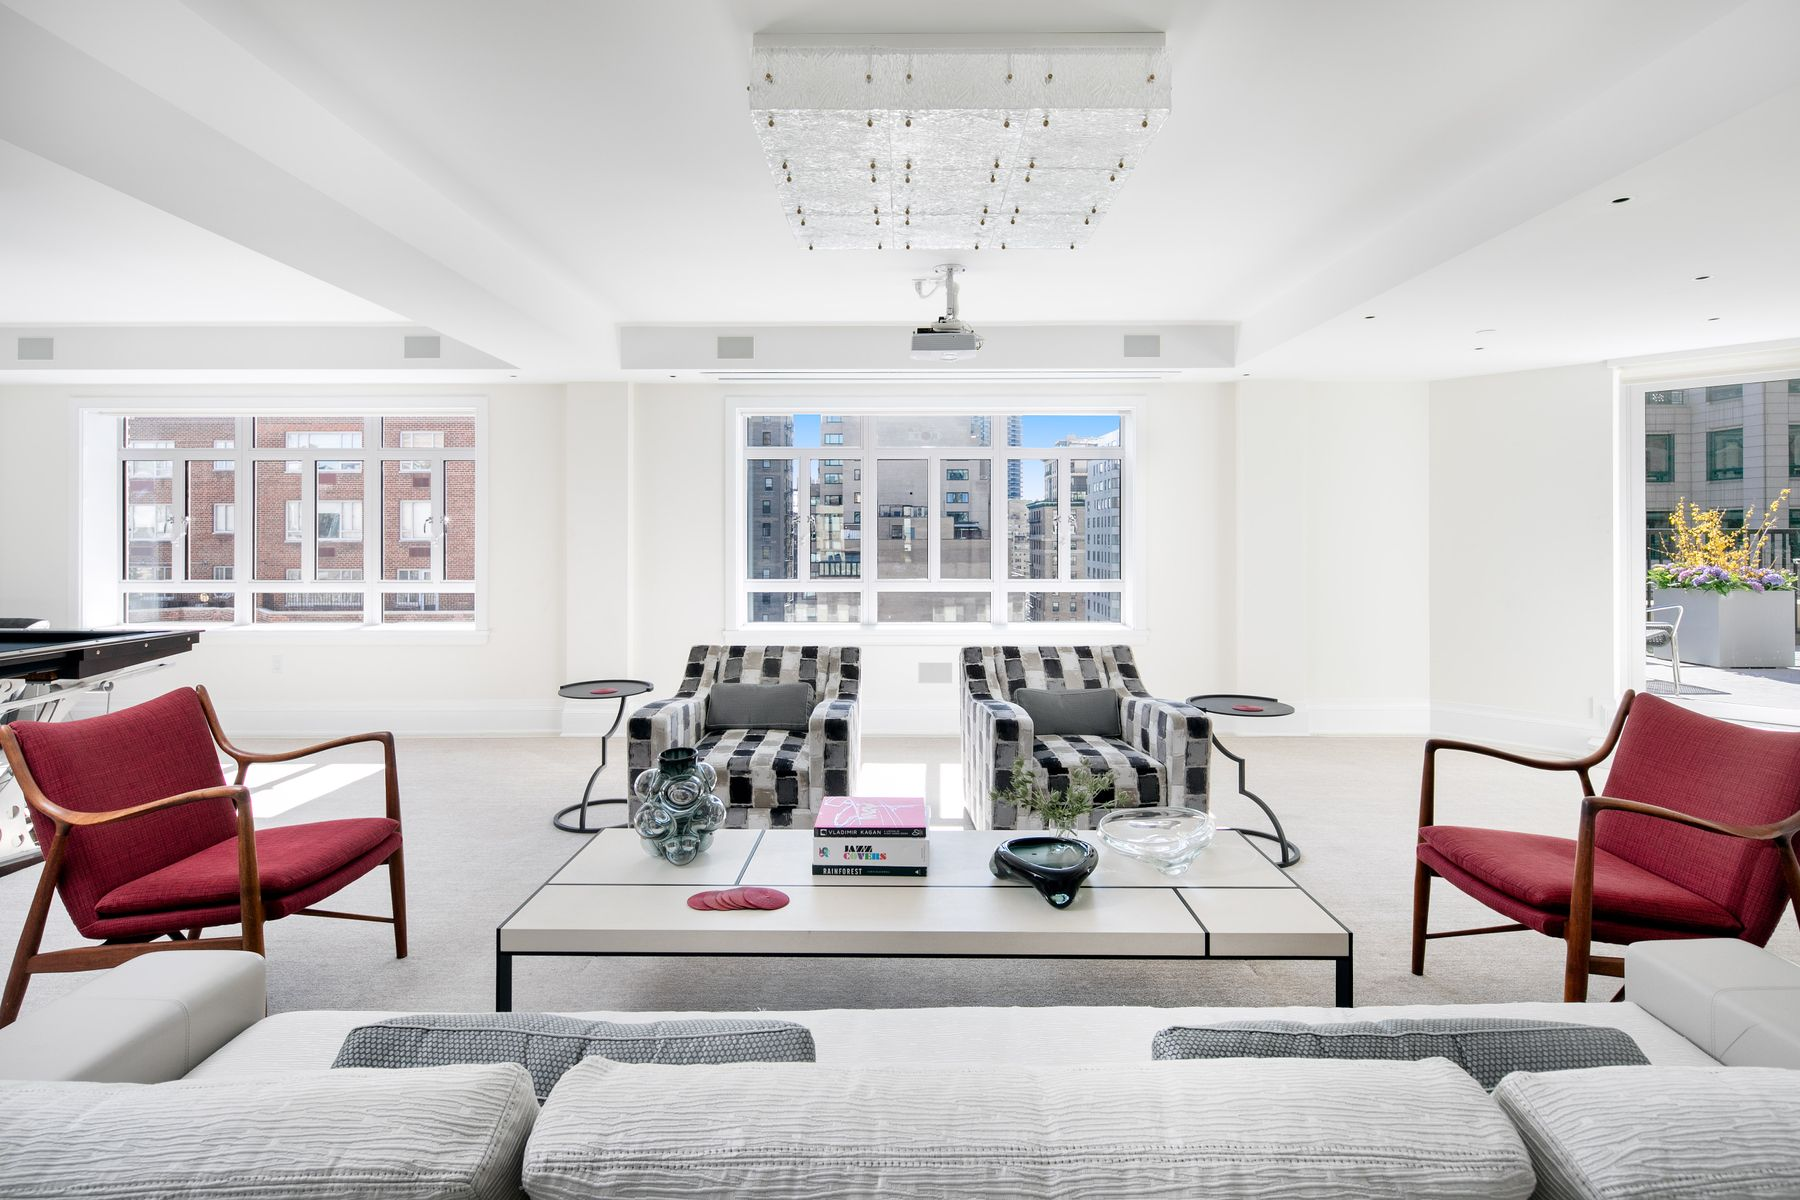 Apartment for Sale at 21 East 61st Street, Apt. 14A 21 East 61st Street Apt 14A, New York, New York 10065 United States